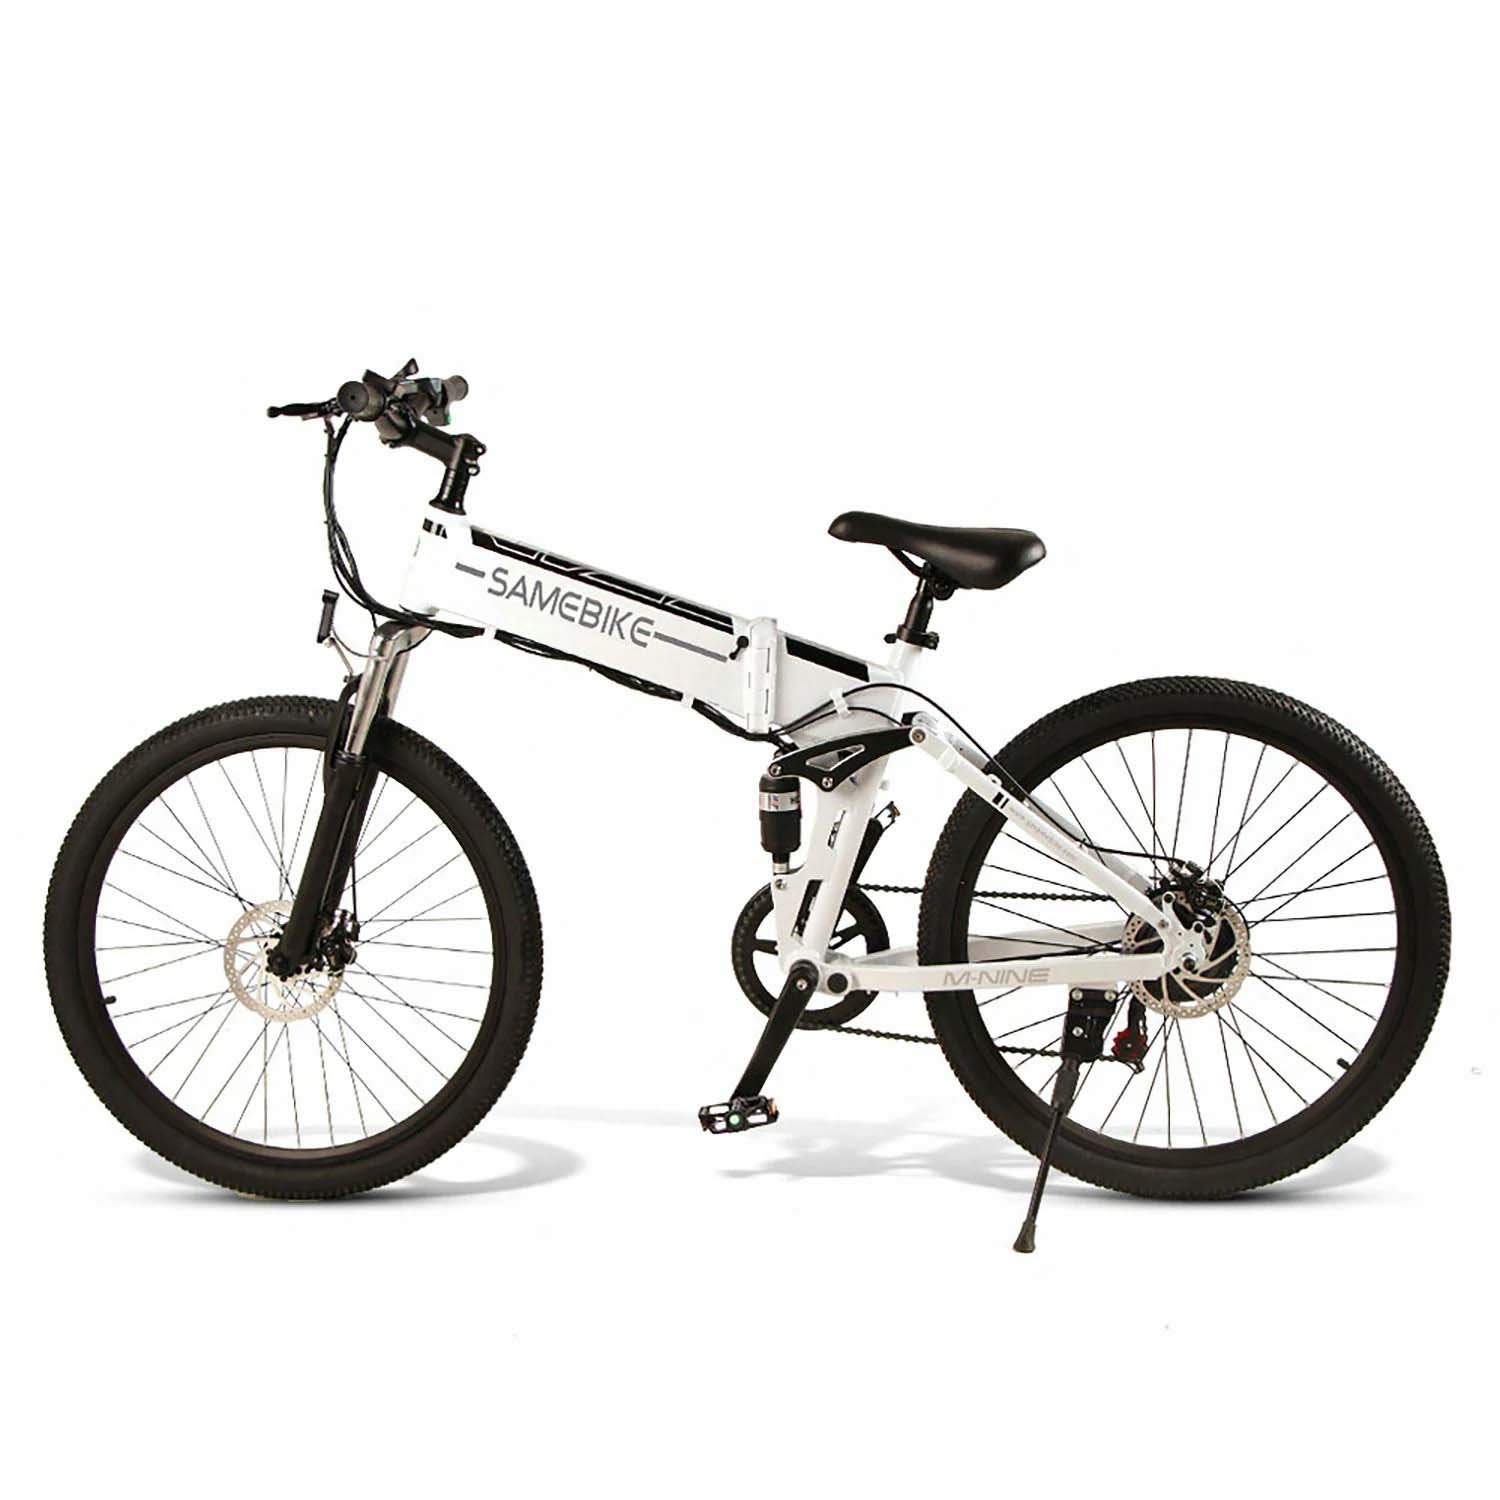 SAMEBIKE LO26-FT 500W Motor Folding Electric Bike 26 Inch Tires 10.4Ah Battery Max 35 KPH Ship from Poland Warehouse